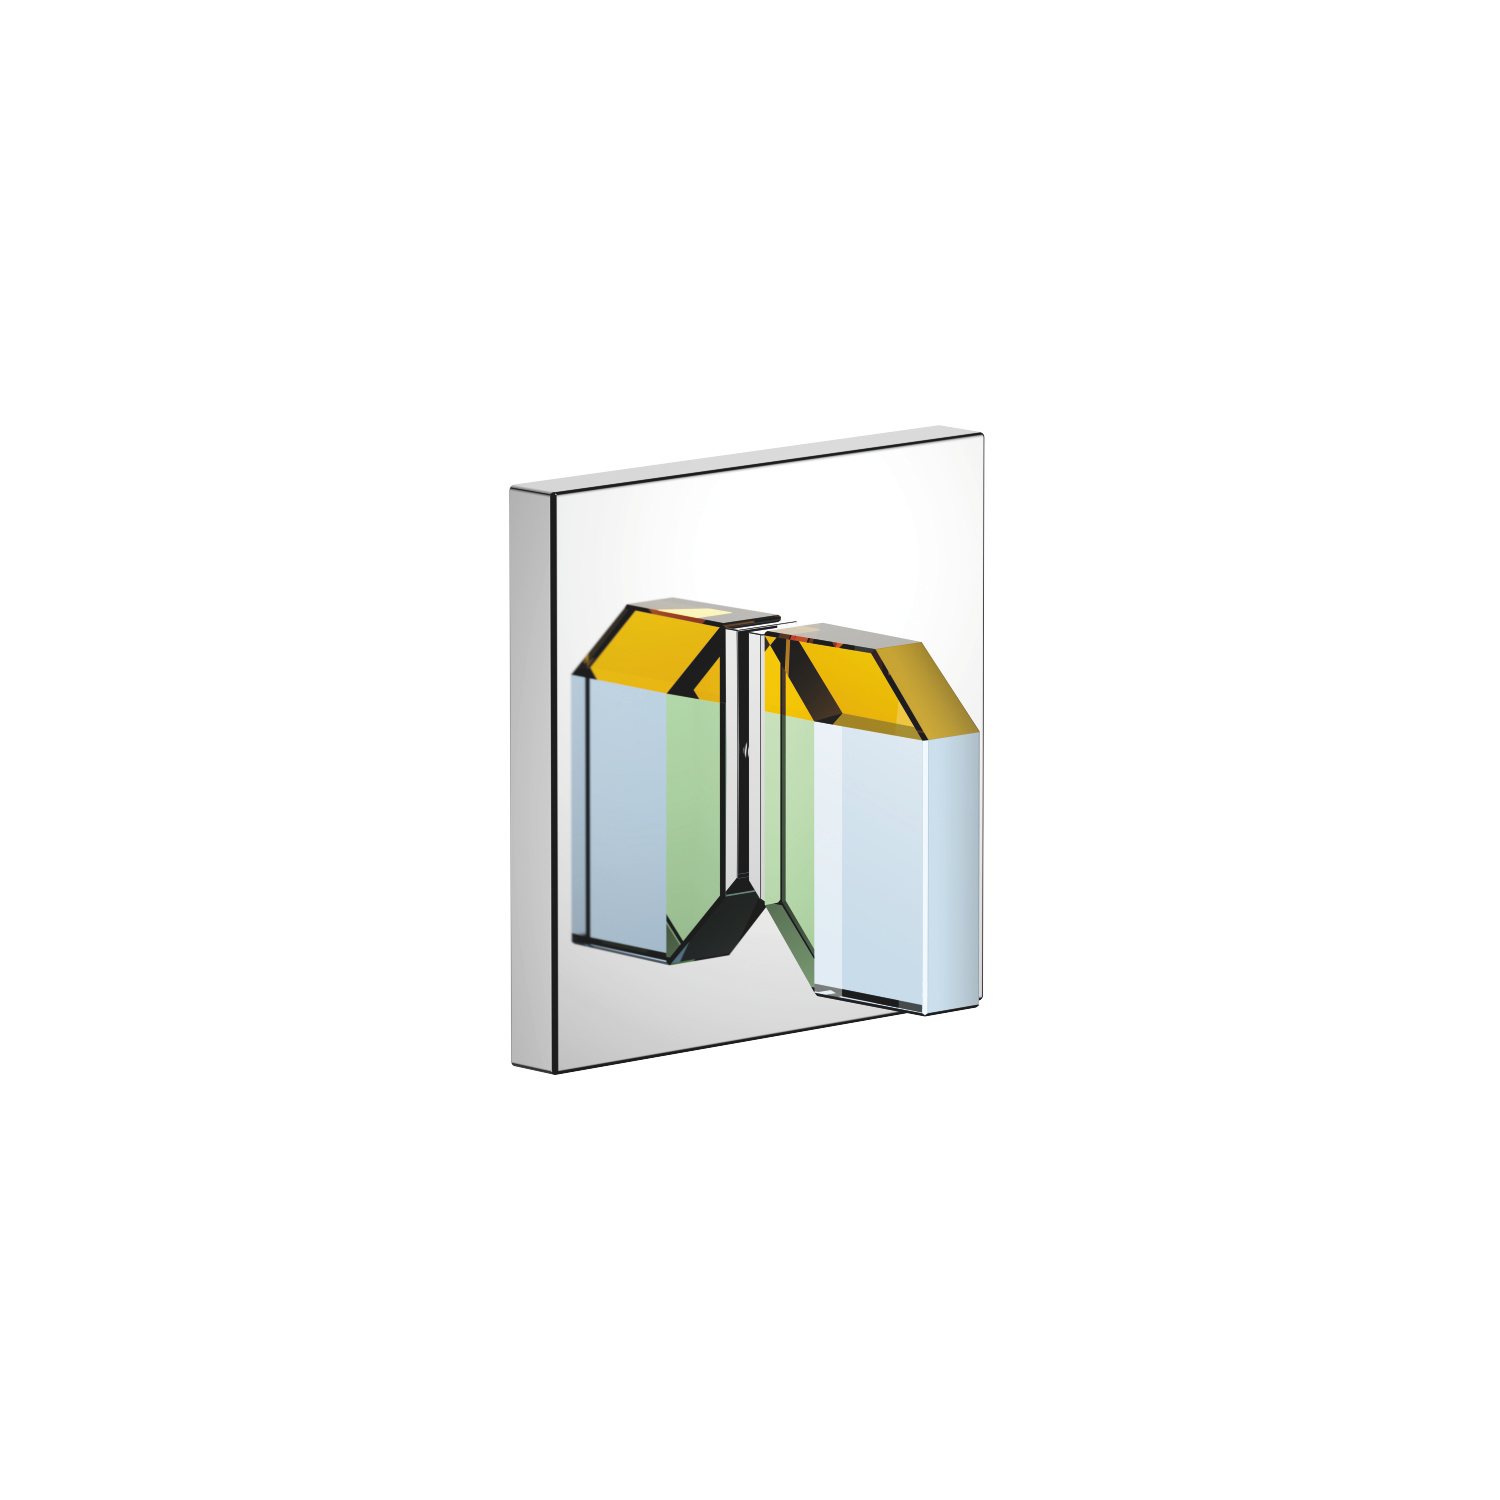 Wall mounted two- and three-way diverter trim - polished chrome